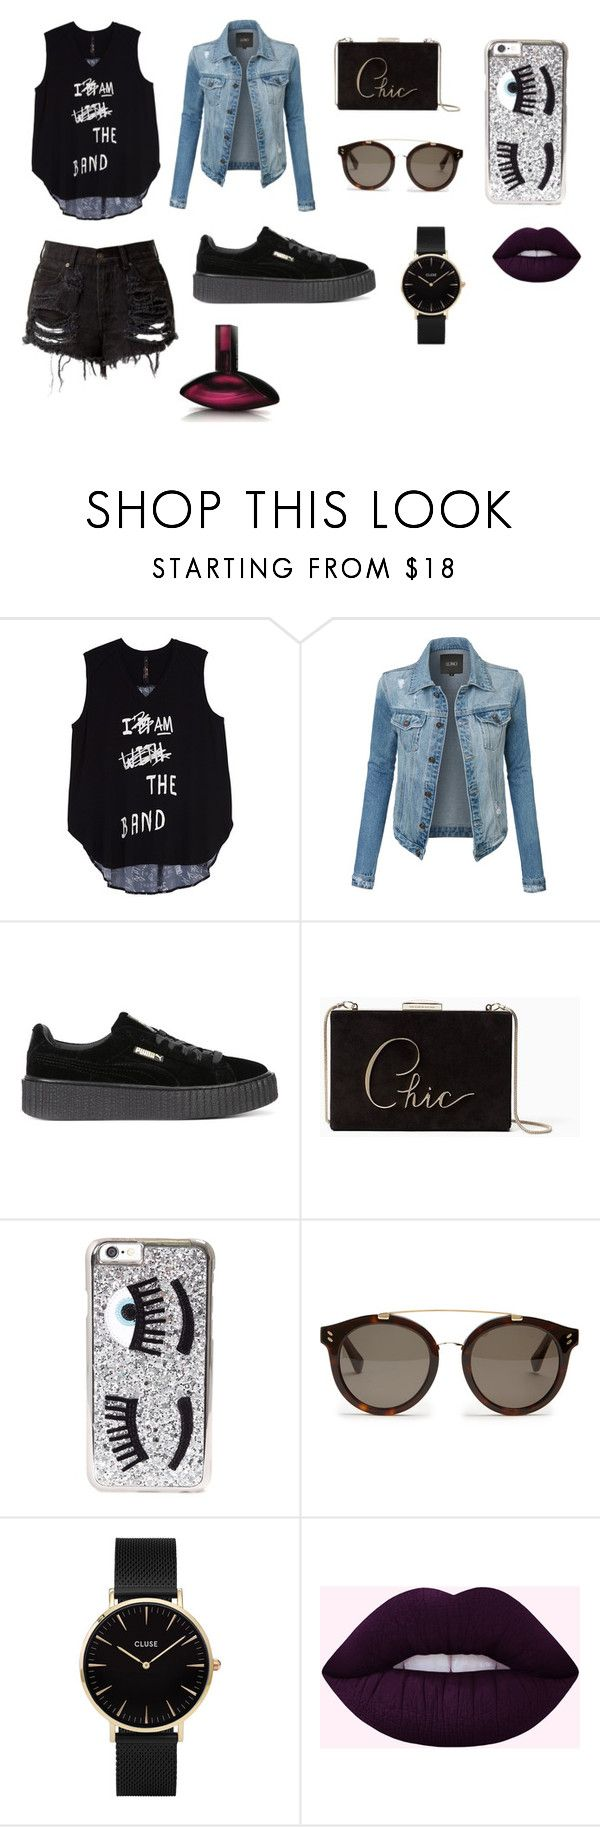 """Oblečení (outfit) na párty"" by deni-loveclothers on Polyvore featuring Melissa McCarthy Seven7, LE3NO, Puma, Kate Spade, Chiara Ferragni, STELLA McCARTNEY, CLUSE, Calvin Klein and plus size clothing"